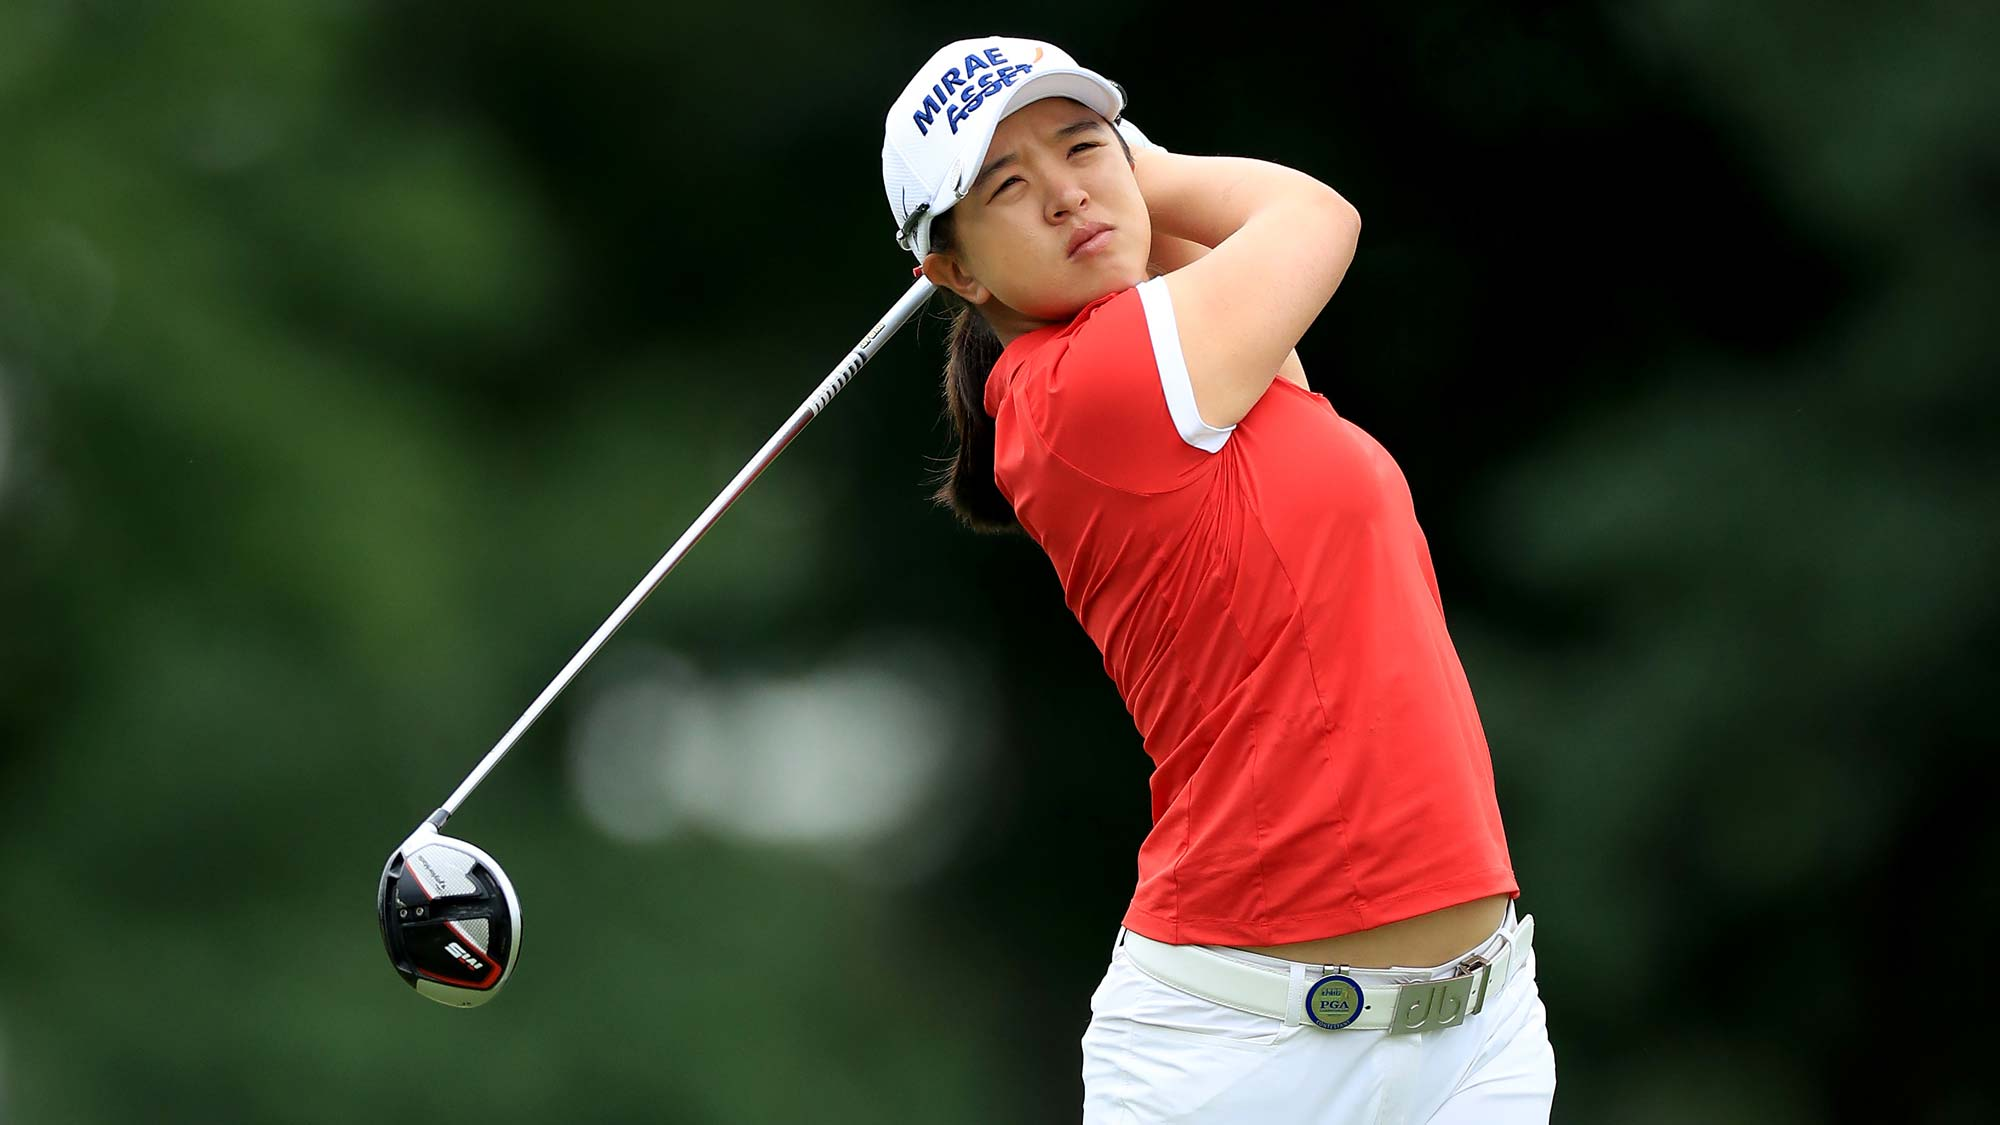 Sei Young Kim of South Korea plays her tee shot on the par 5, seventh hole during the third round of the 2019 Women's PGA Championship